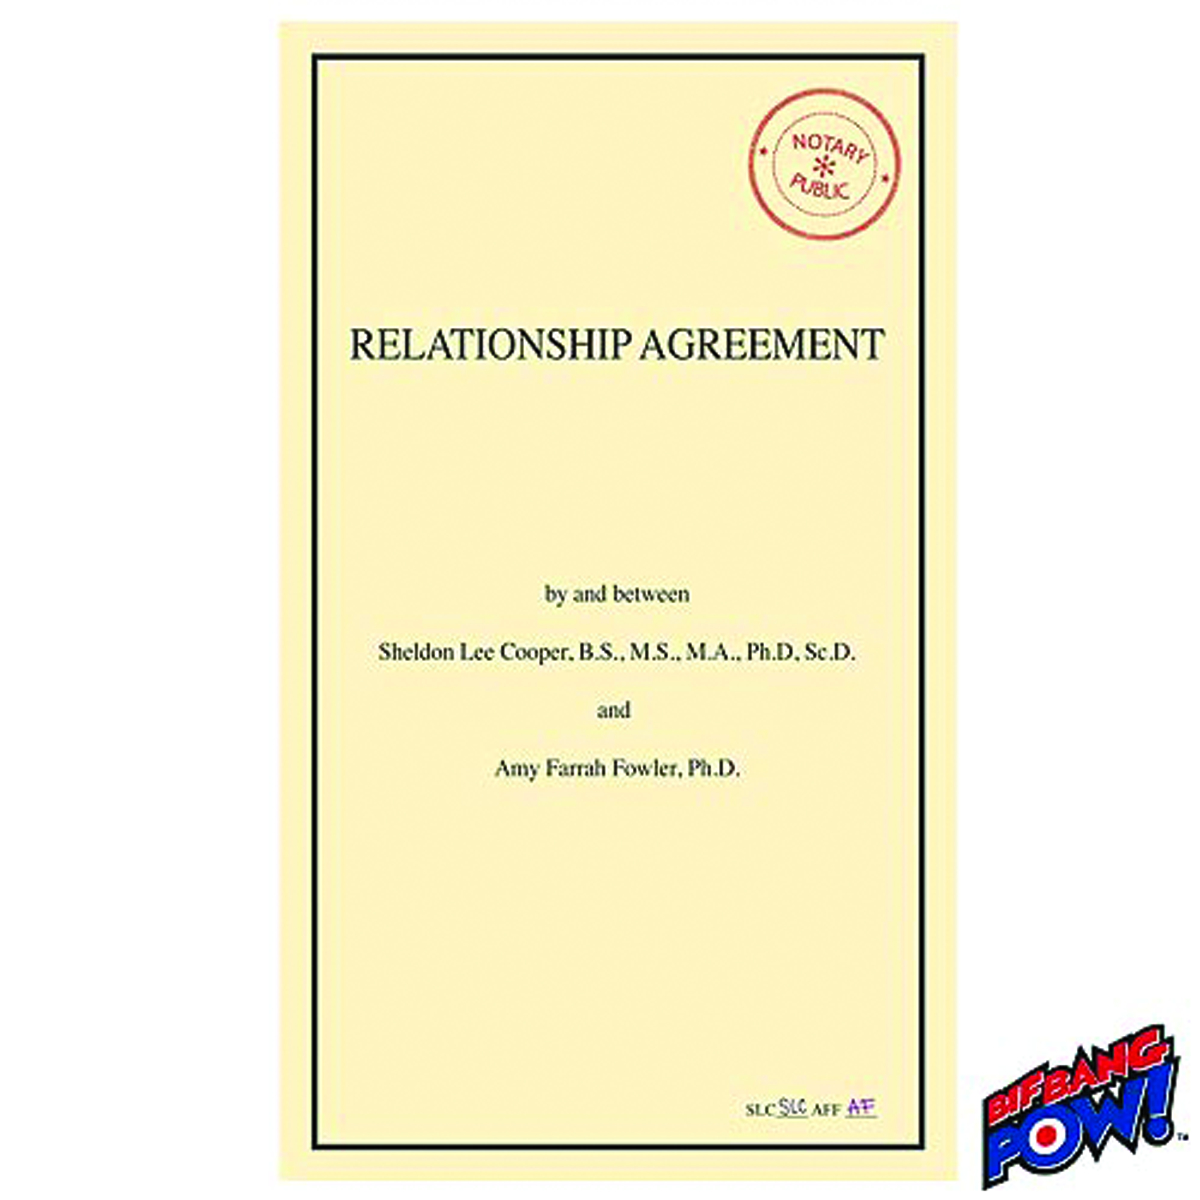 BIG BANG THEORY RELATIONSHIP AGREEMENT JOURNAL